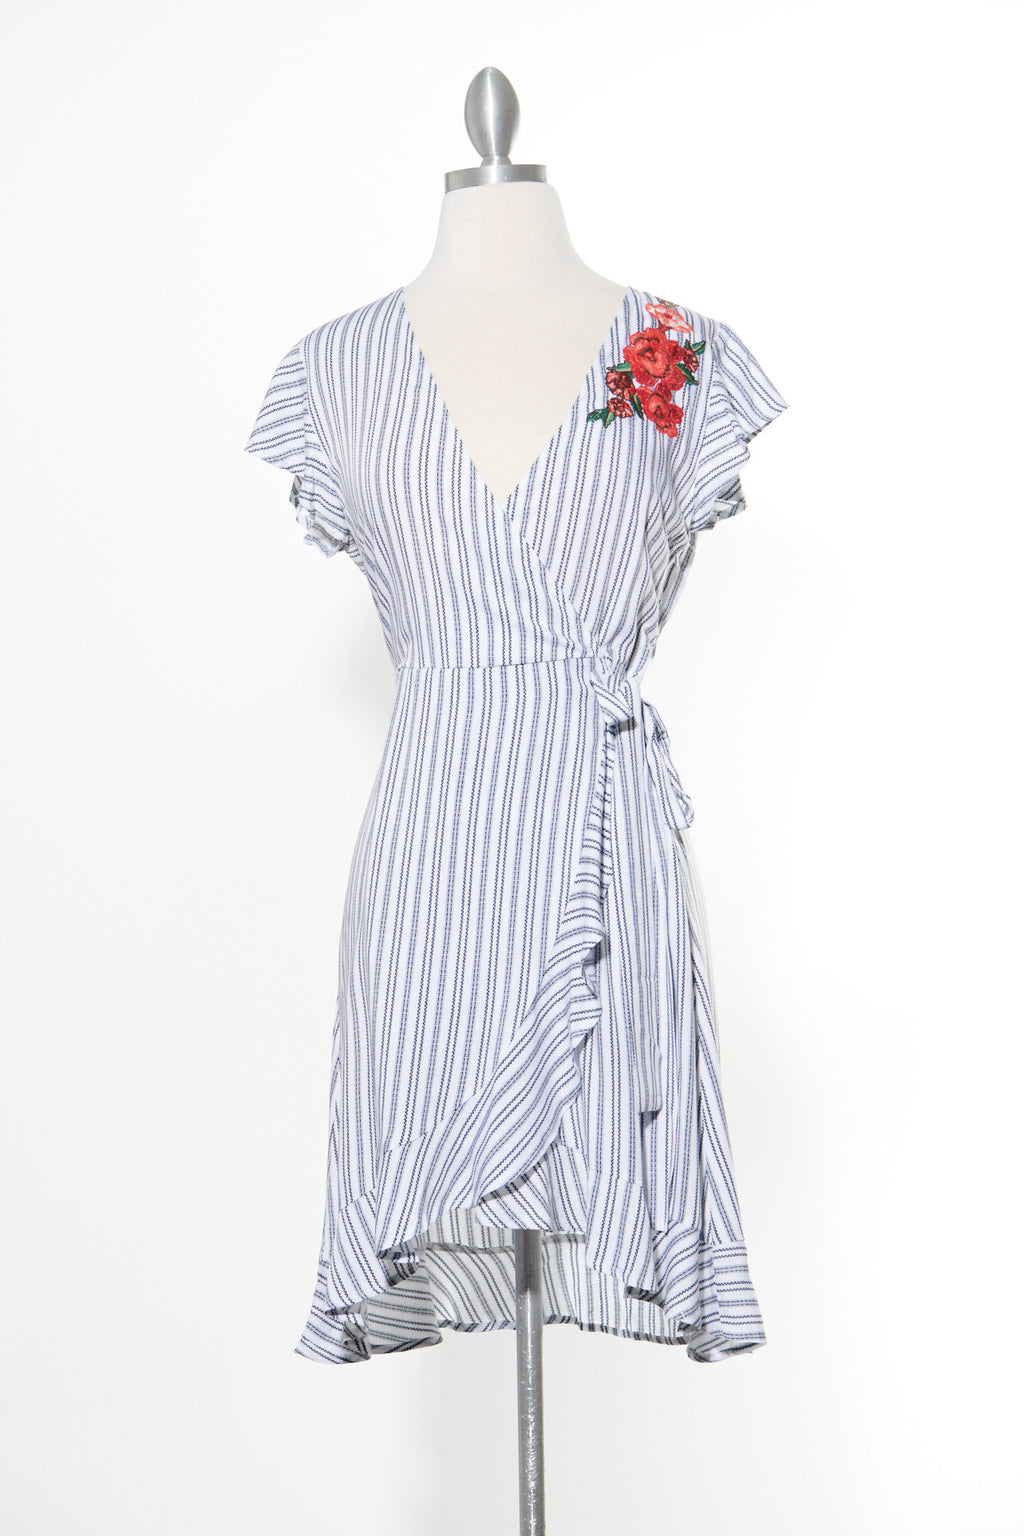 Striped Dreams White Dress